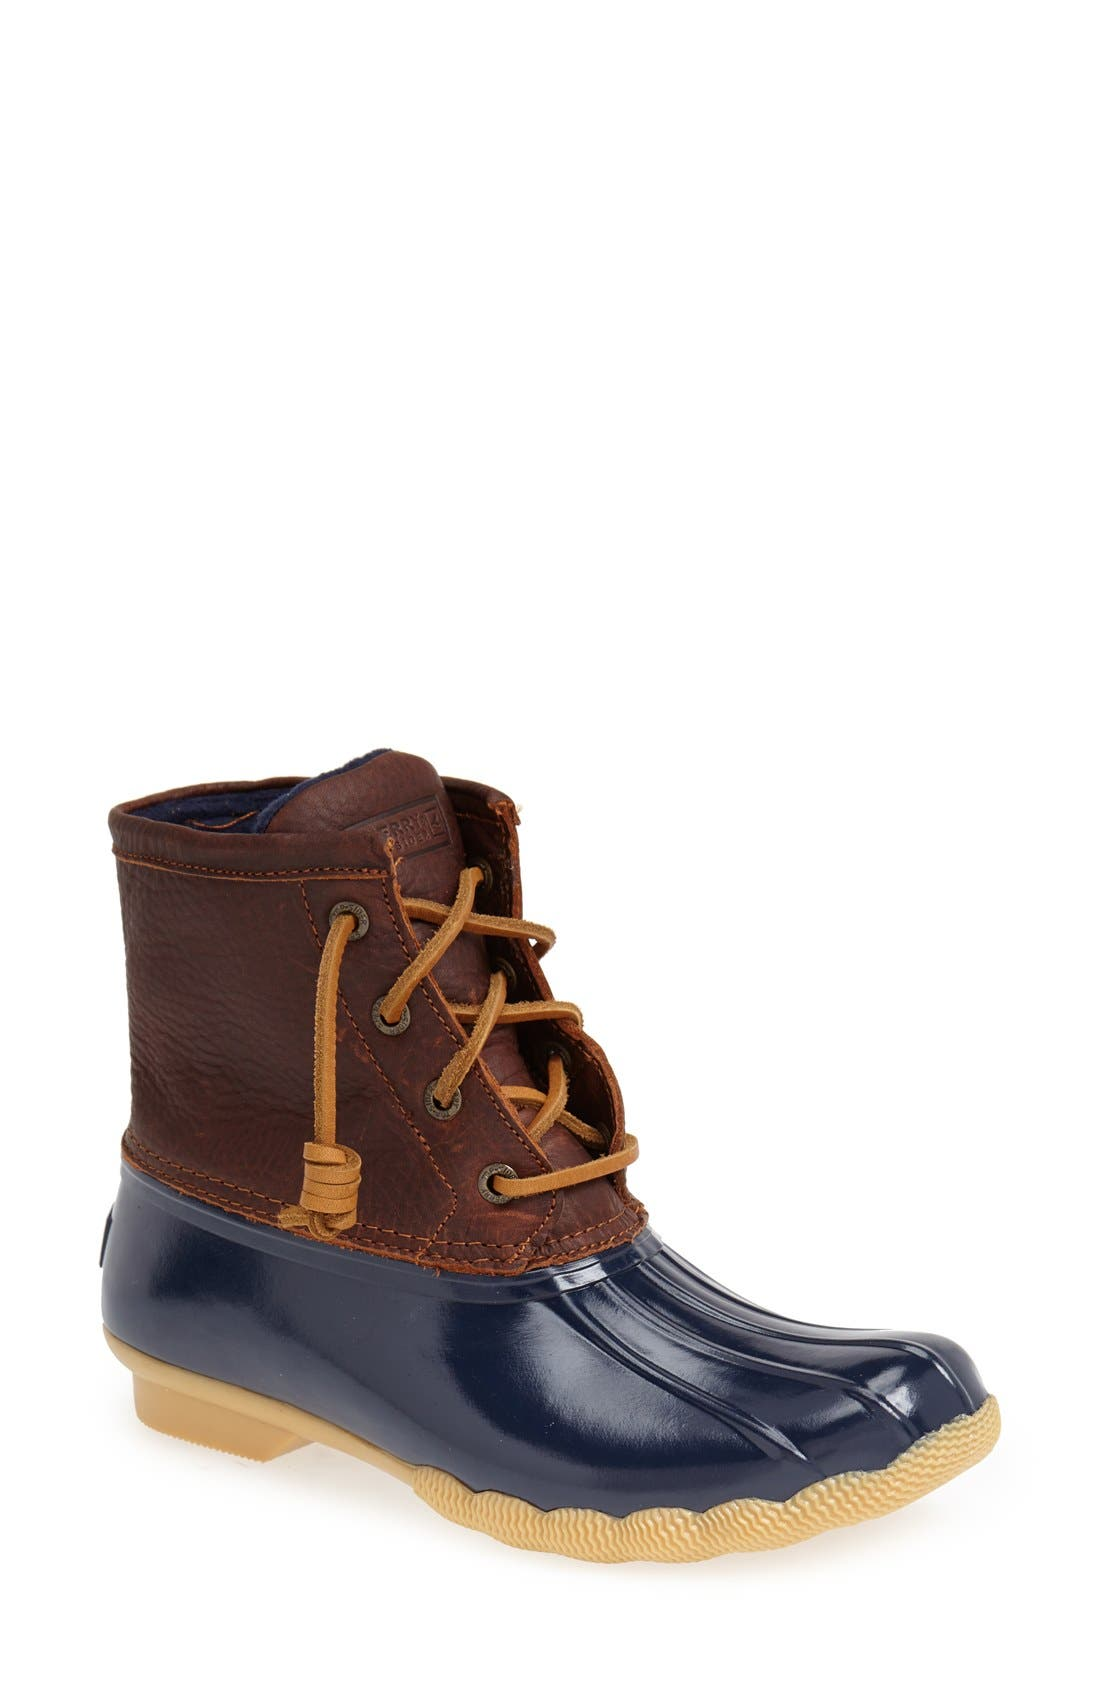 Alternate Image 1 Selected - Sperry Saltwater Duck Boot (Women)